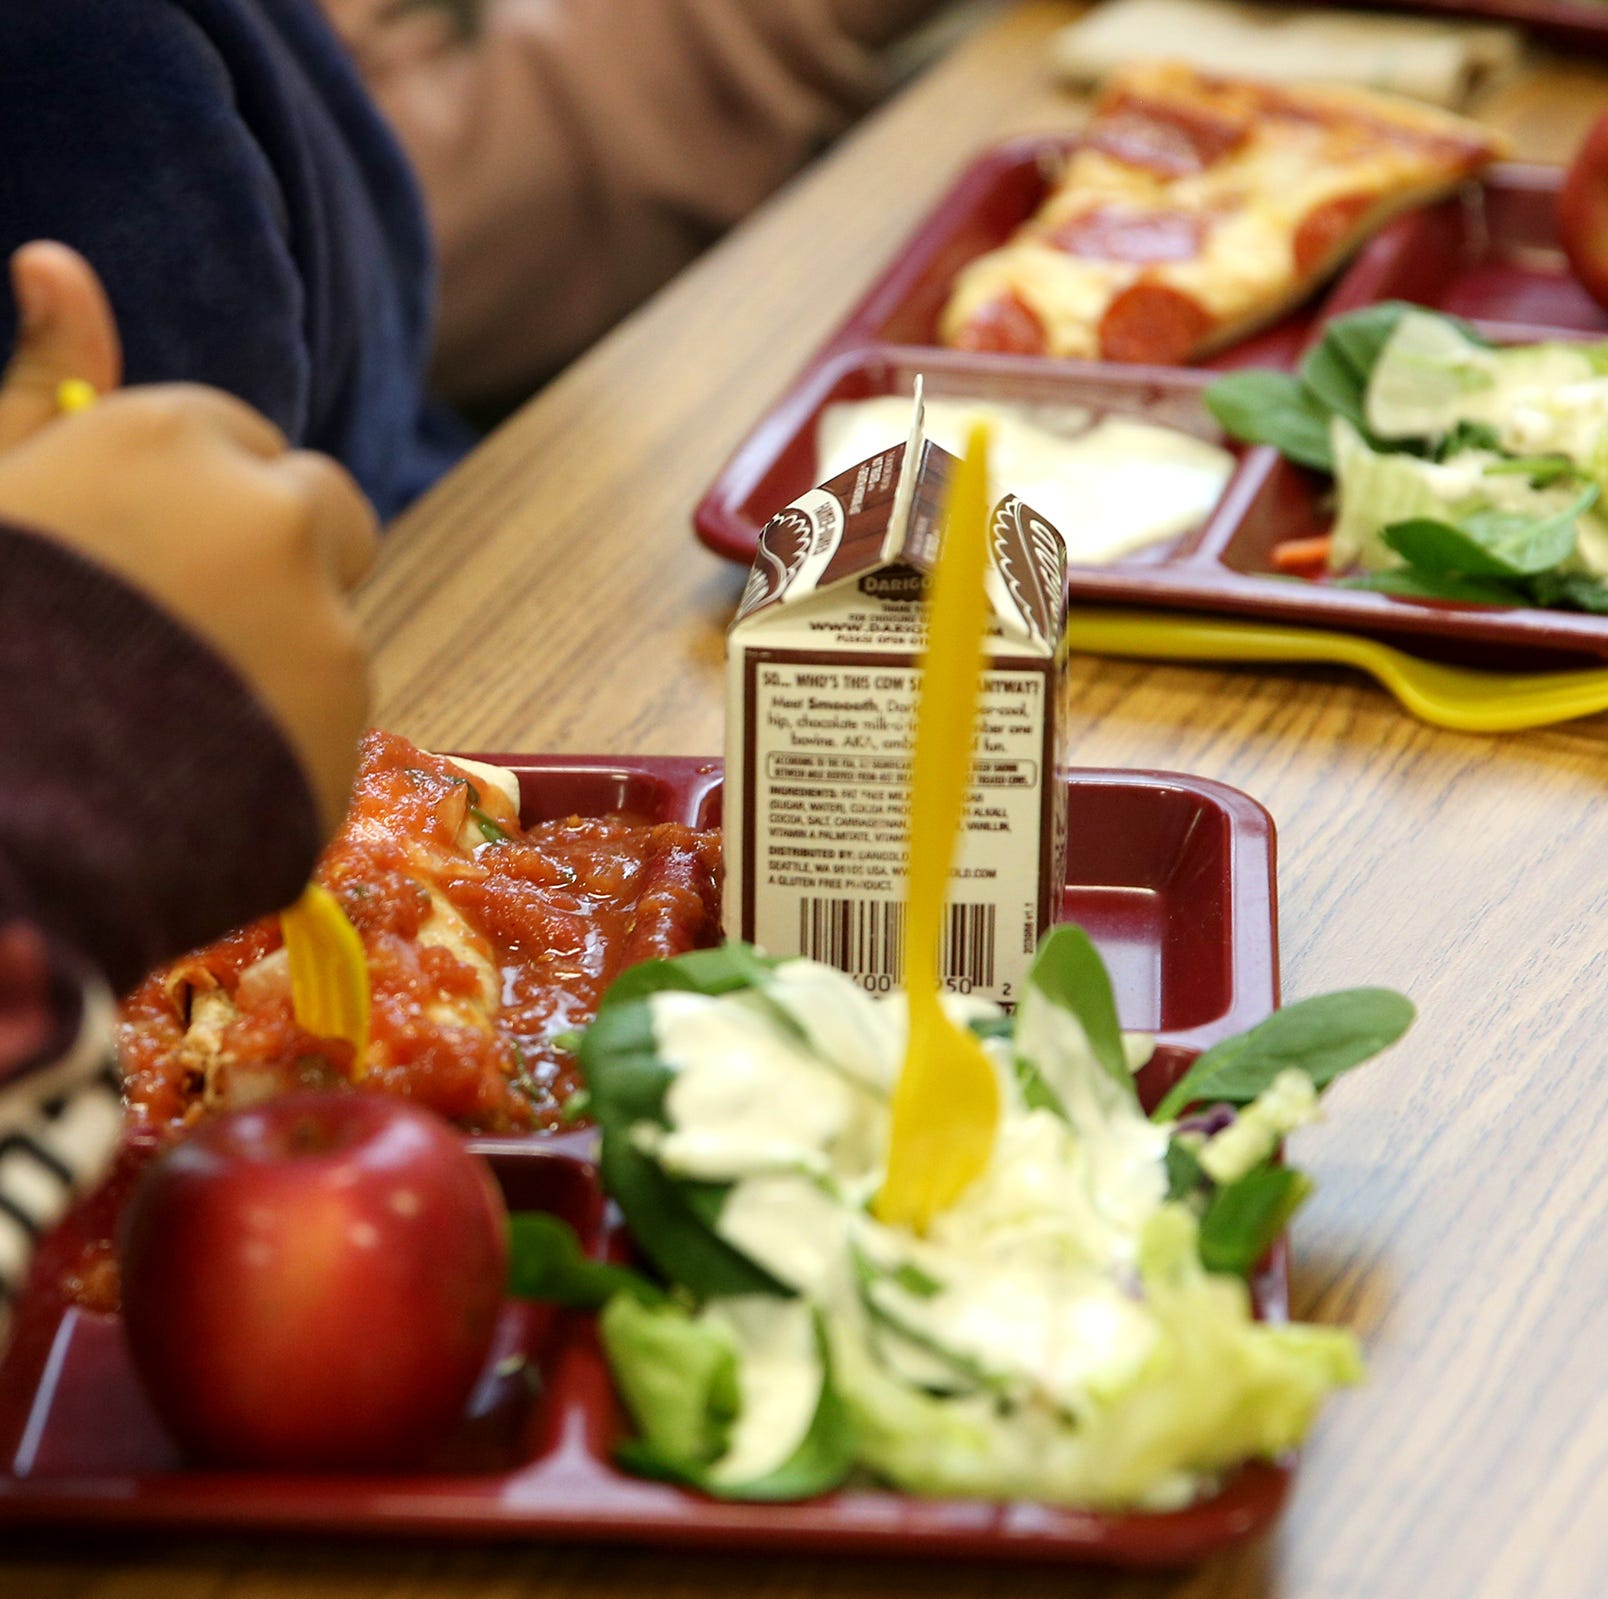 Oregon lawmakers want more school meal options, federal changes may limit them